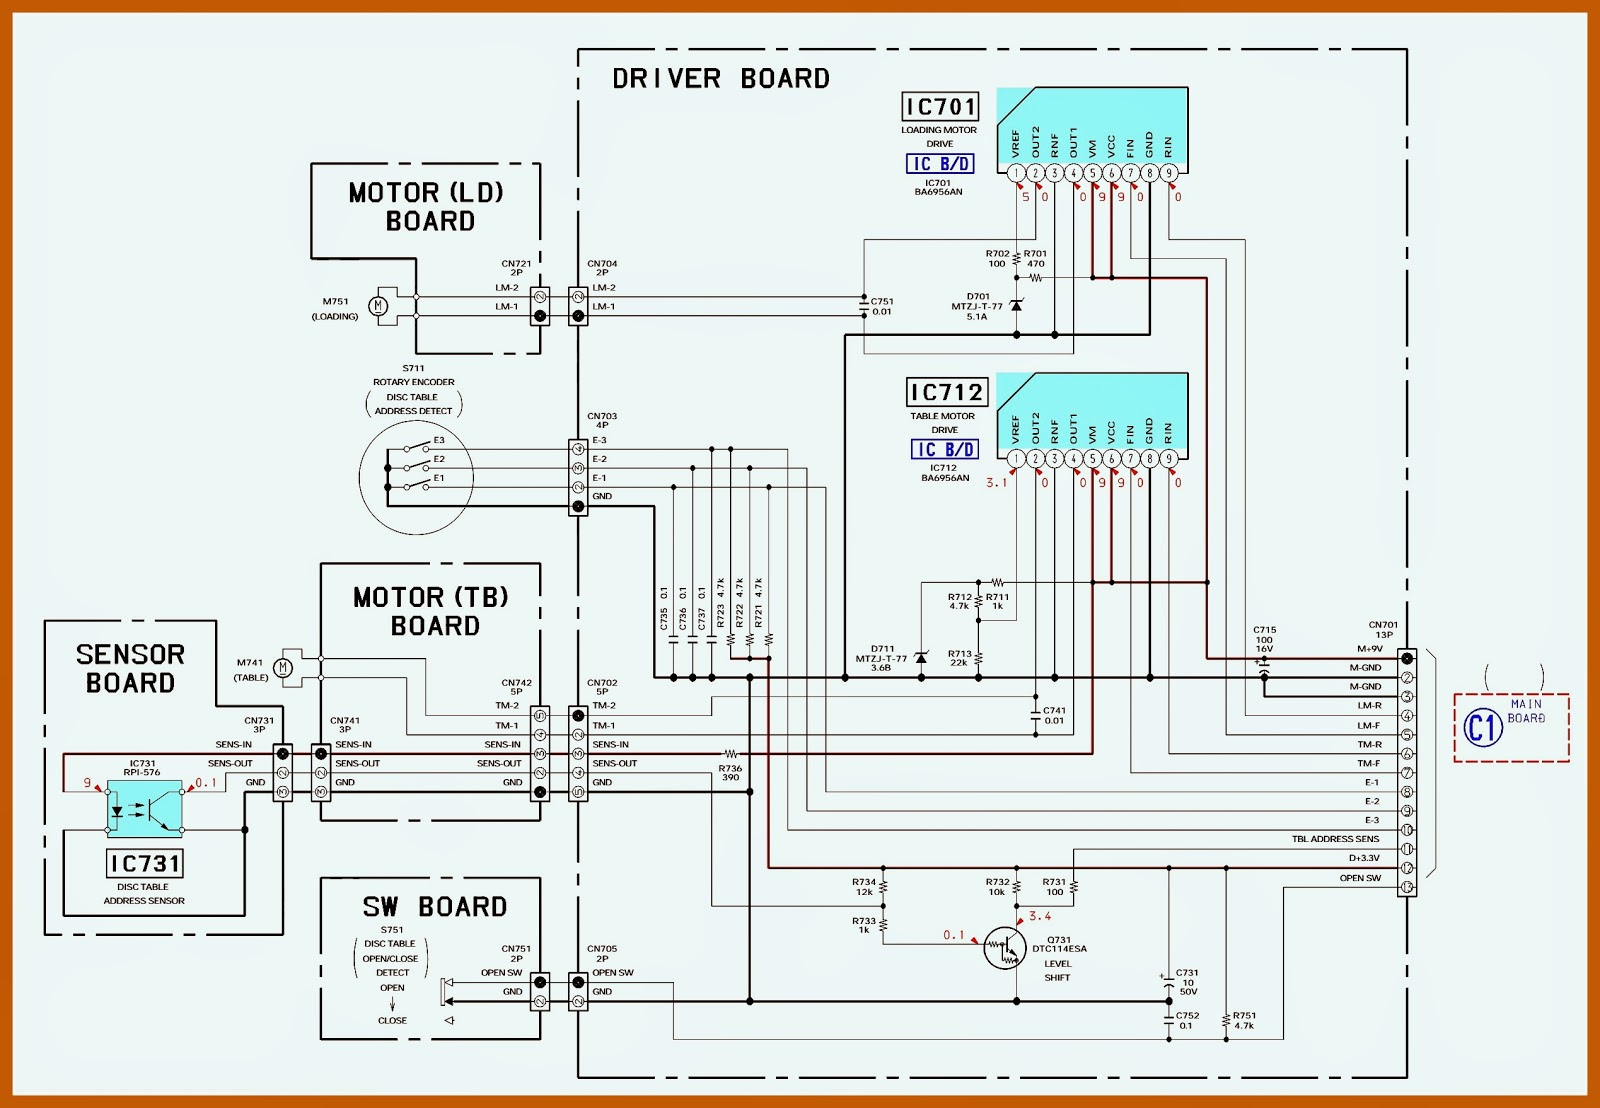 Flex Sensor With Arduino additionally Cbhaisen additionally 37wji 97 Ford F150 Driver Side Window Quit Going further parison Autel MaxiSYS To The DS708 MaxiDAS Bp95 in addition ElectronicsAndMotors Parallel Breakout Relay. on motor wiring diagram